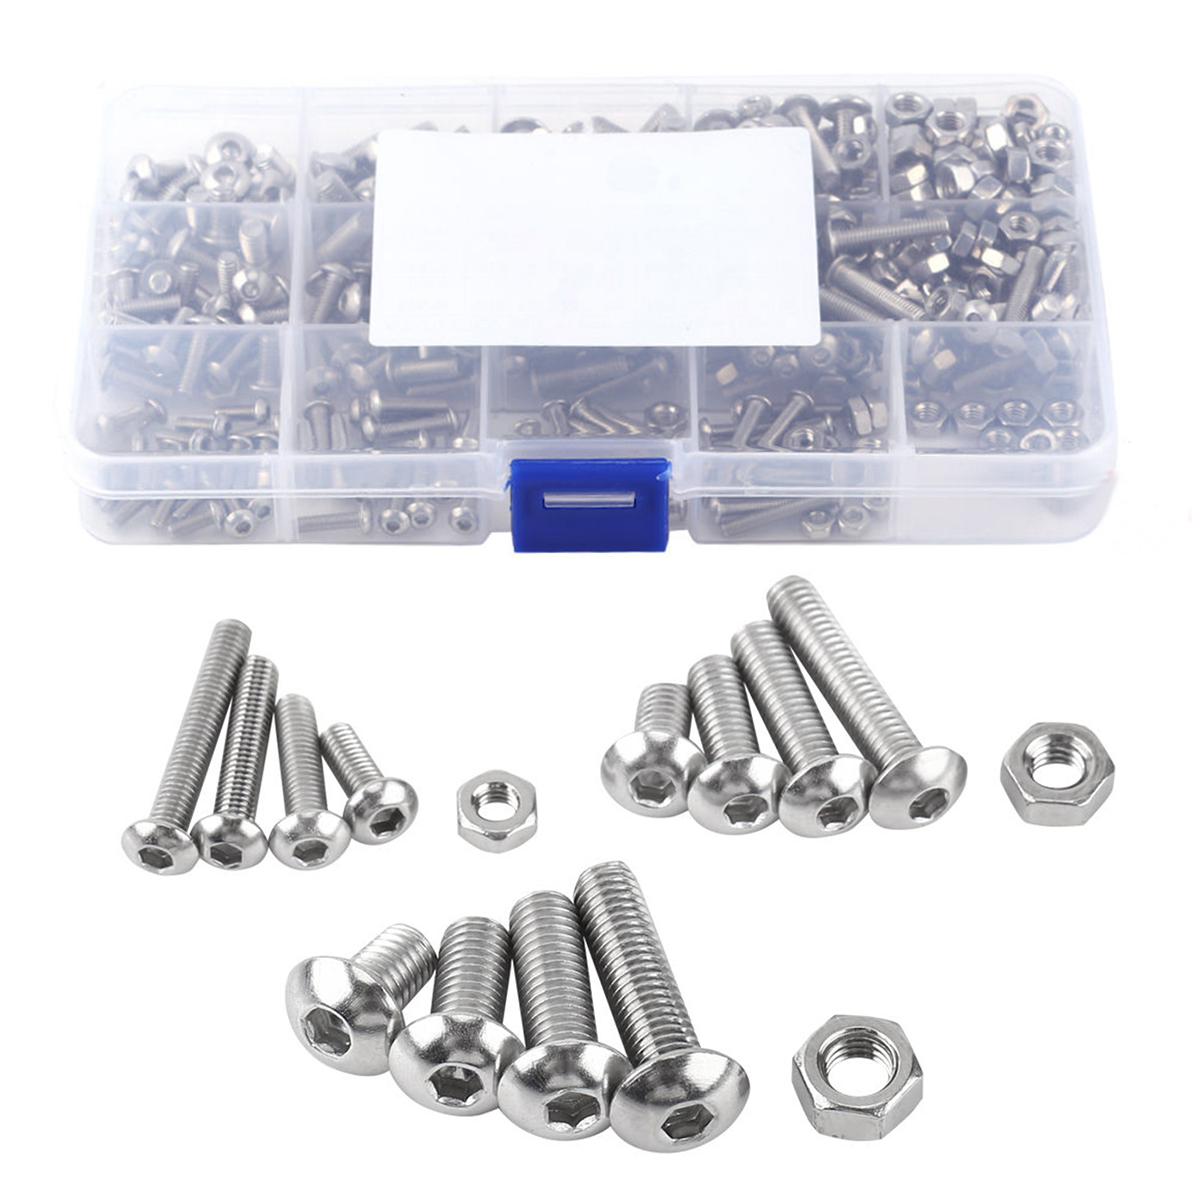 440pcs Hex Socket Button Head Bolts M3 M4 M5 Stainless Steel Metric Screws Nuts Assortment Kit Set with Plastic Box m3 m4 m5 steel head screws bolts nuts hex socket head cap and nuts assortment button head allen bolts hexagon socket screws kit